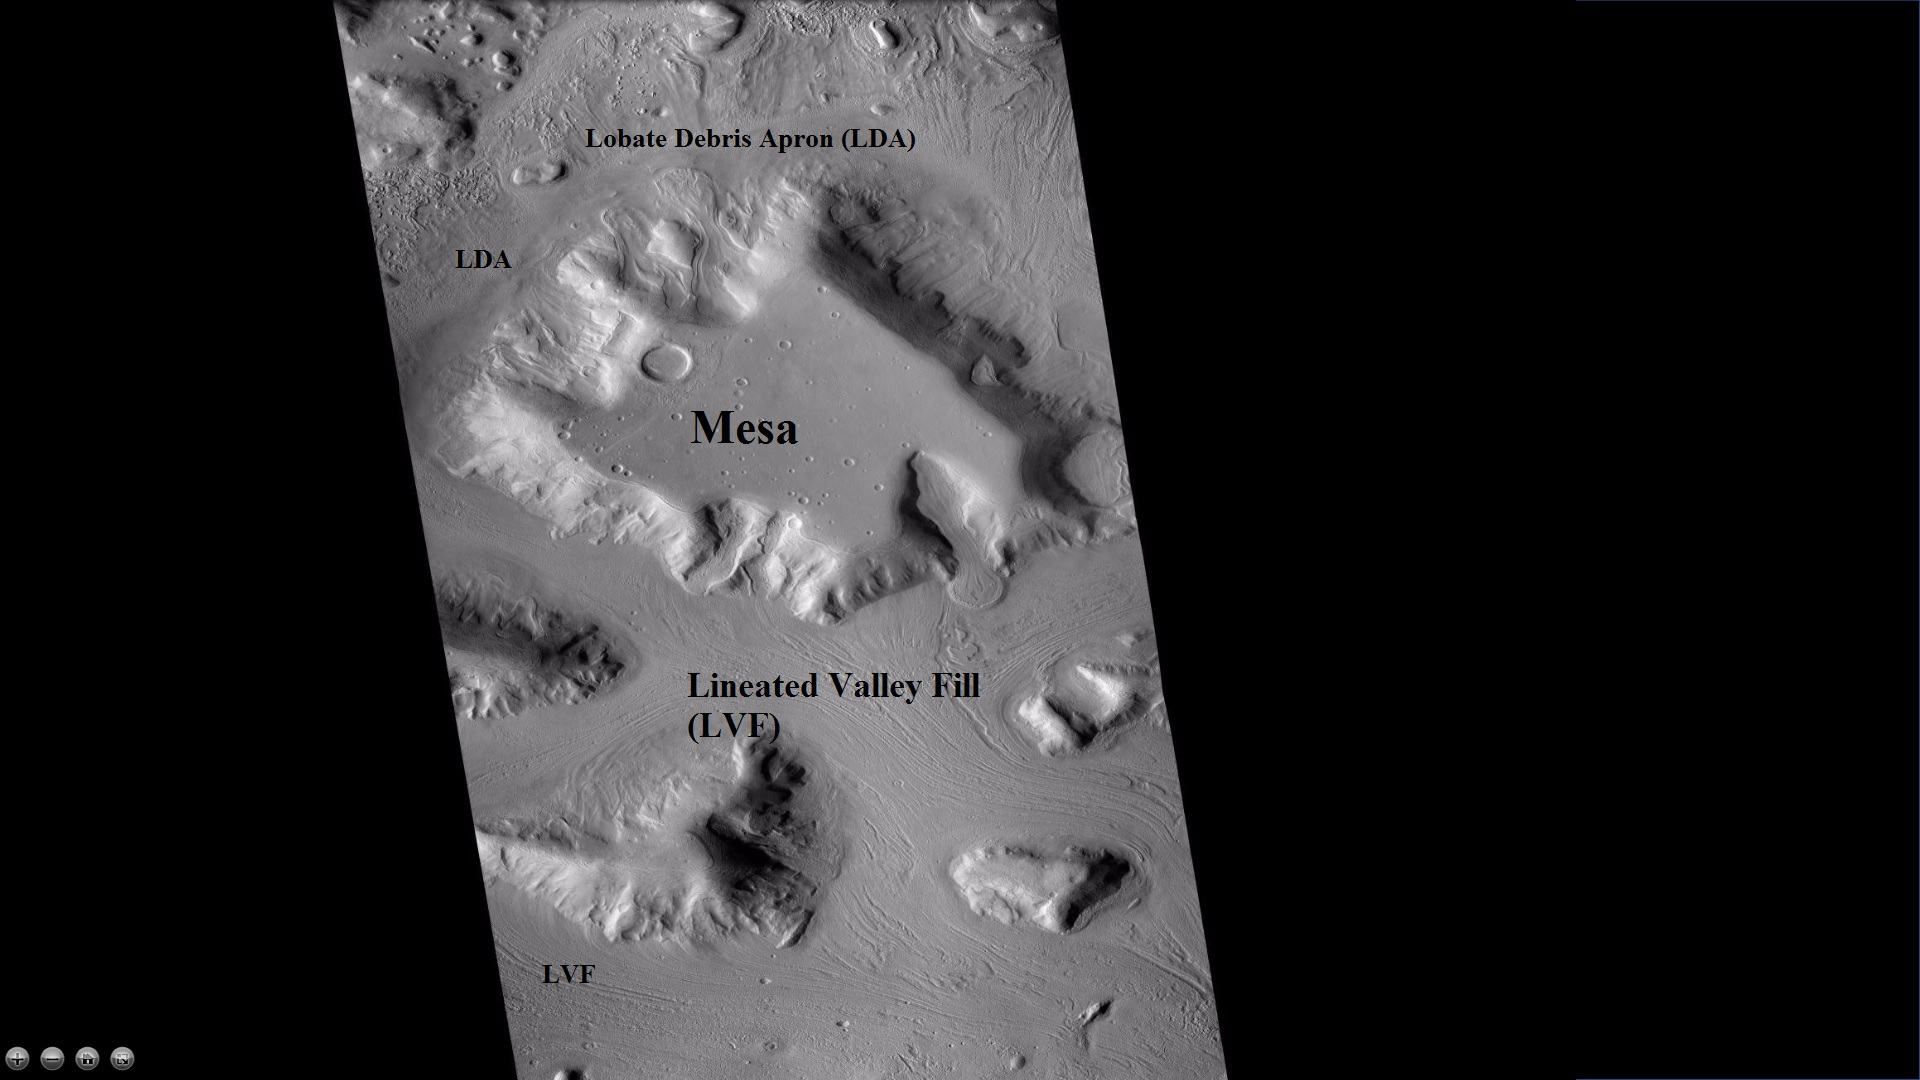 Wide CTX view showing mesa and buttes with lobate debris aprons and lineated valley fill around them.